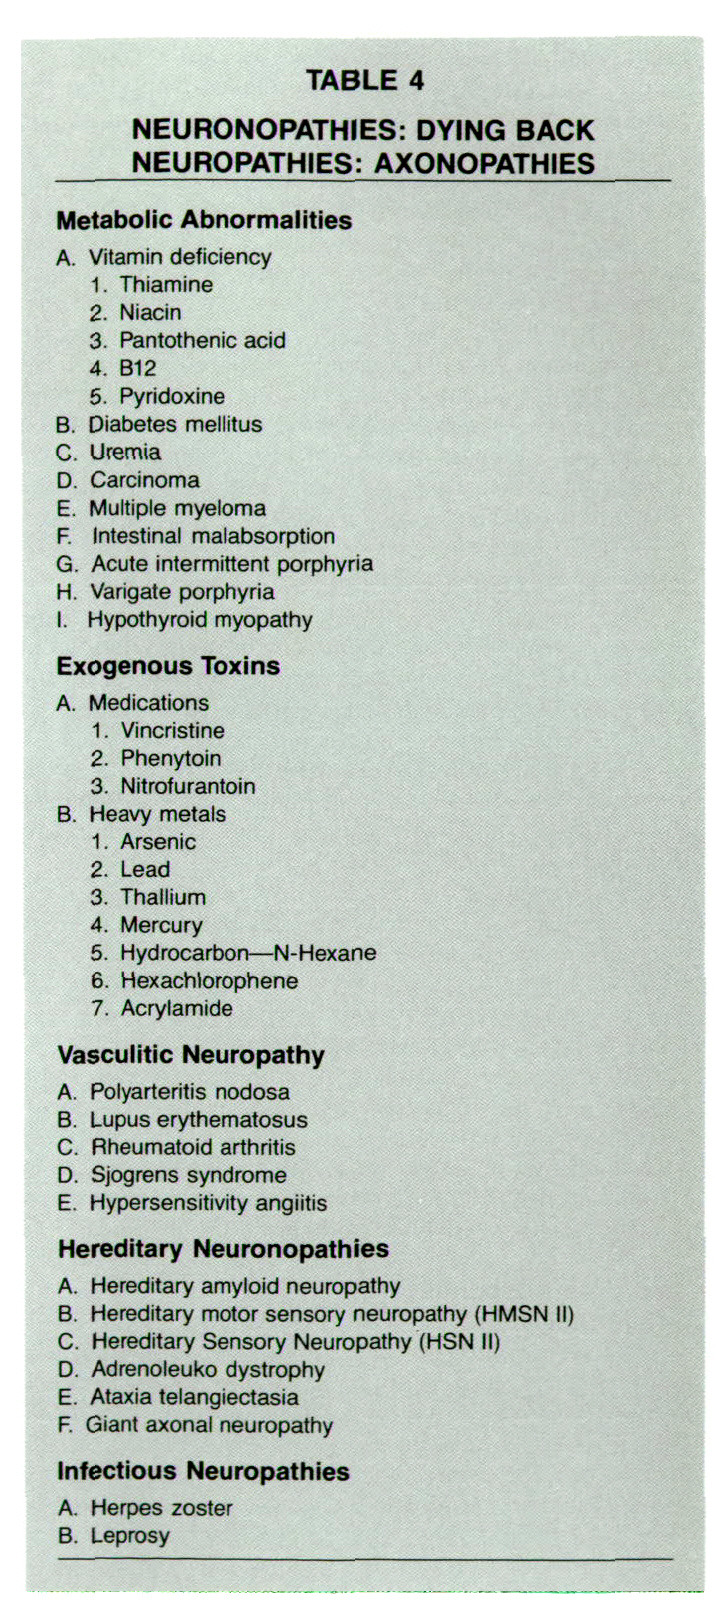 TABLE 4NEURONOPATHIES: DYING BACK NEUROPATHIES: AXONOPATHIES